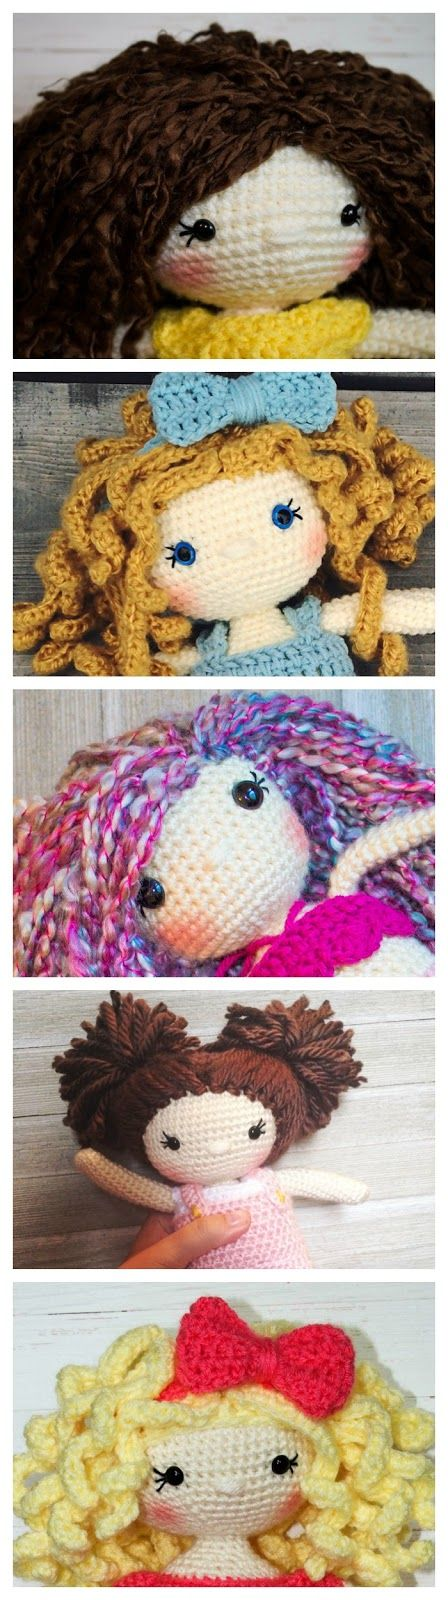 How to Attach Hair to a Crochet Doll - The Friendly Red Fox | Big ...